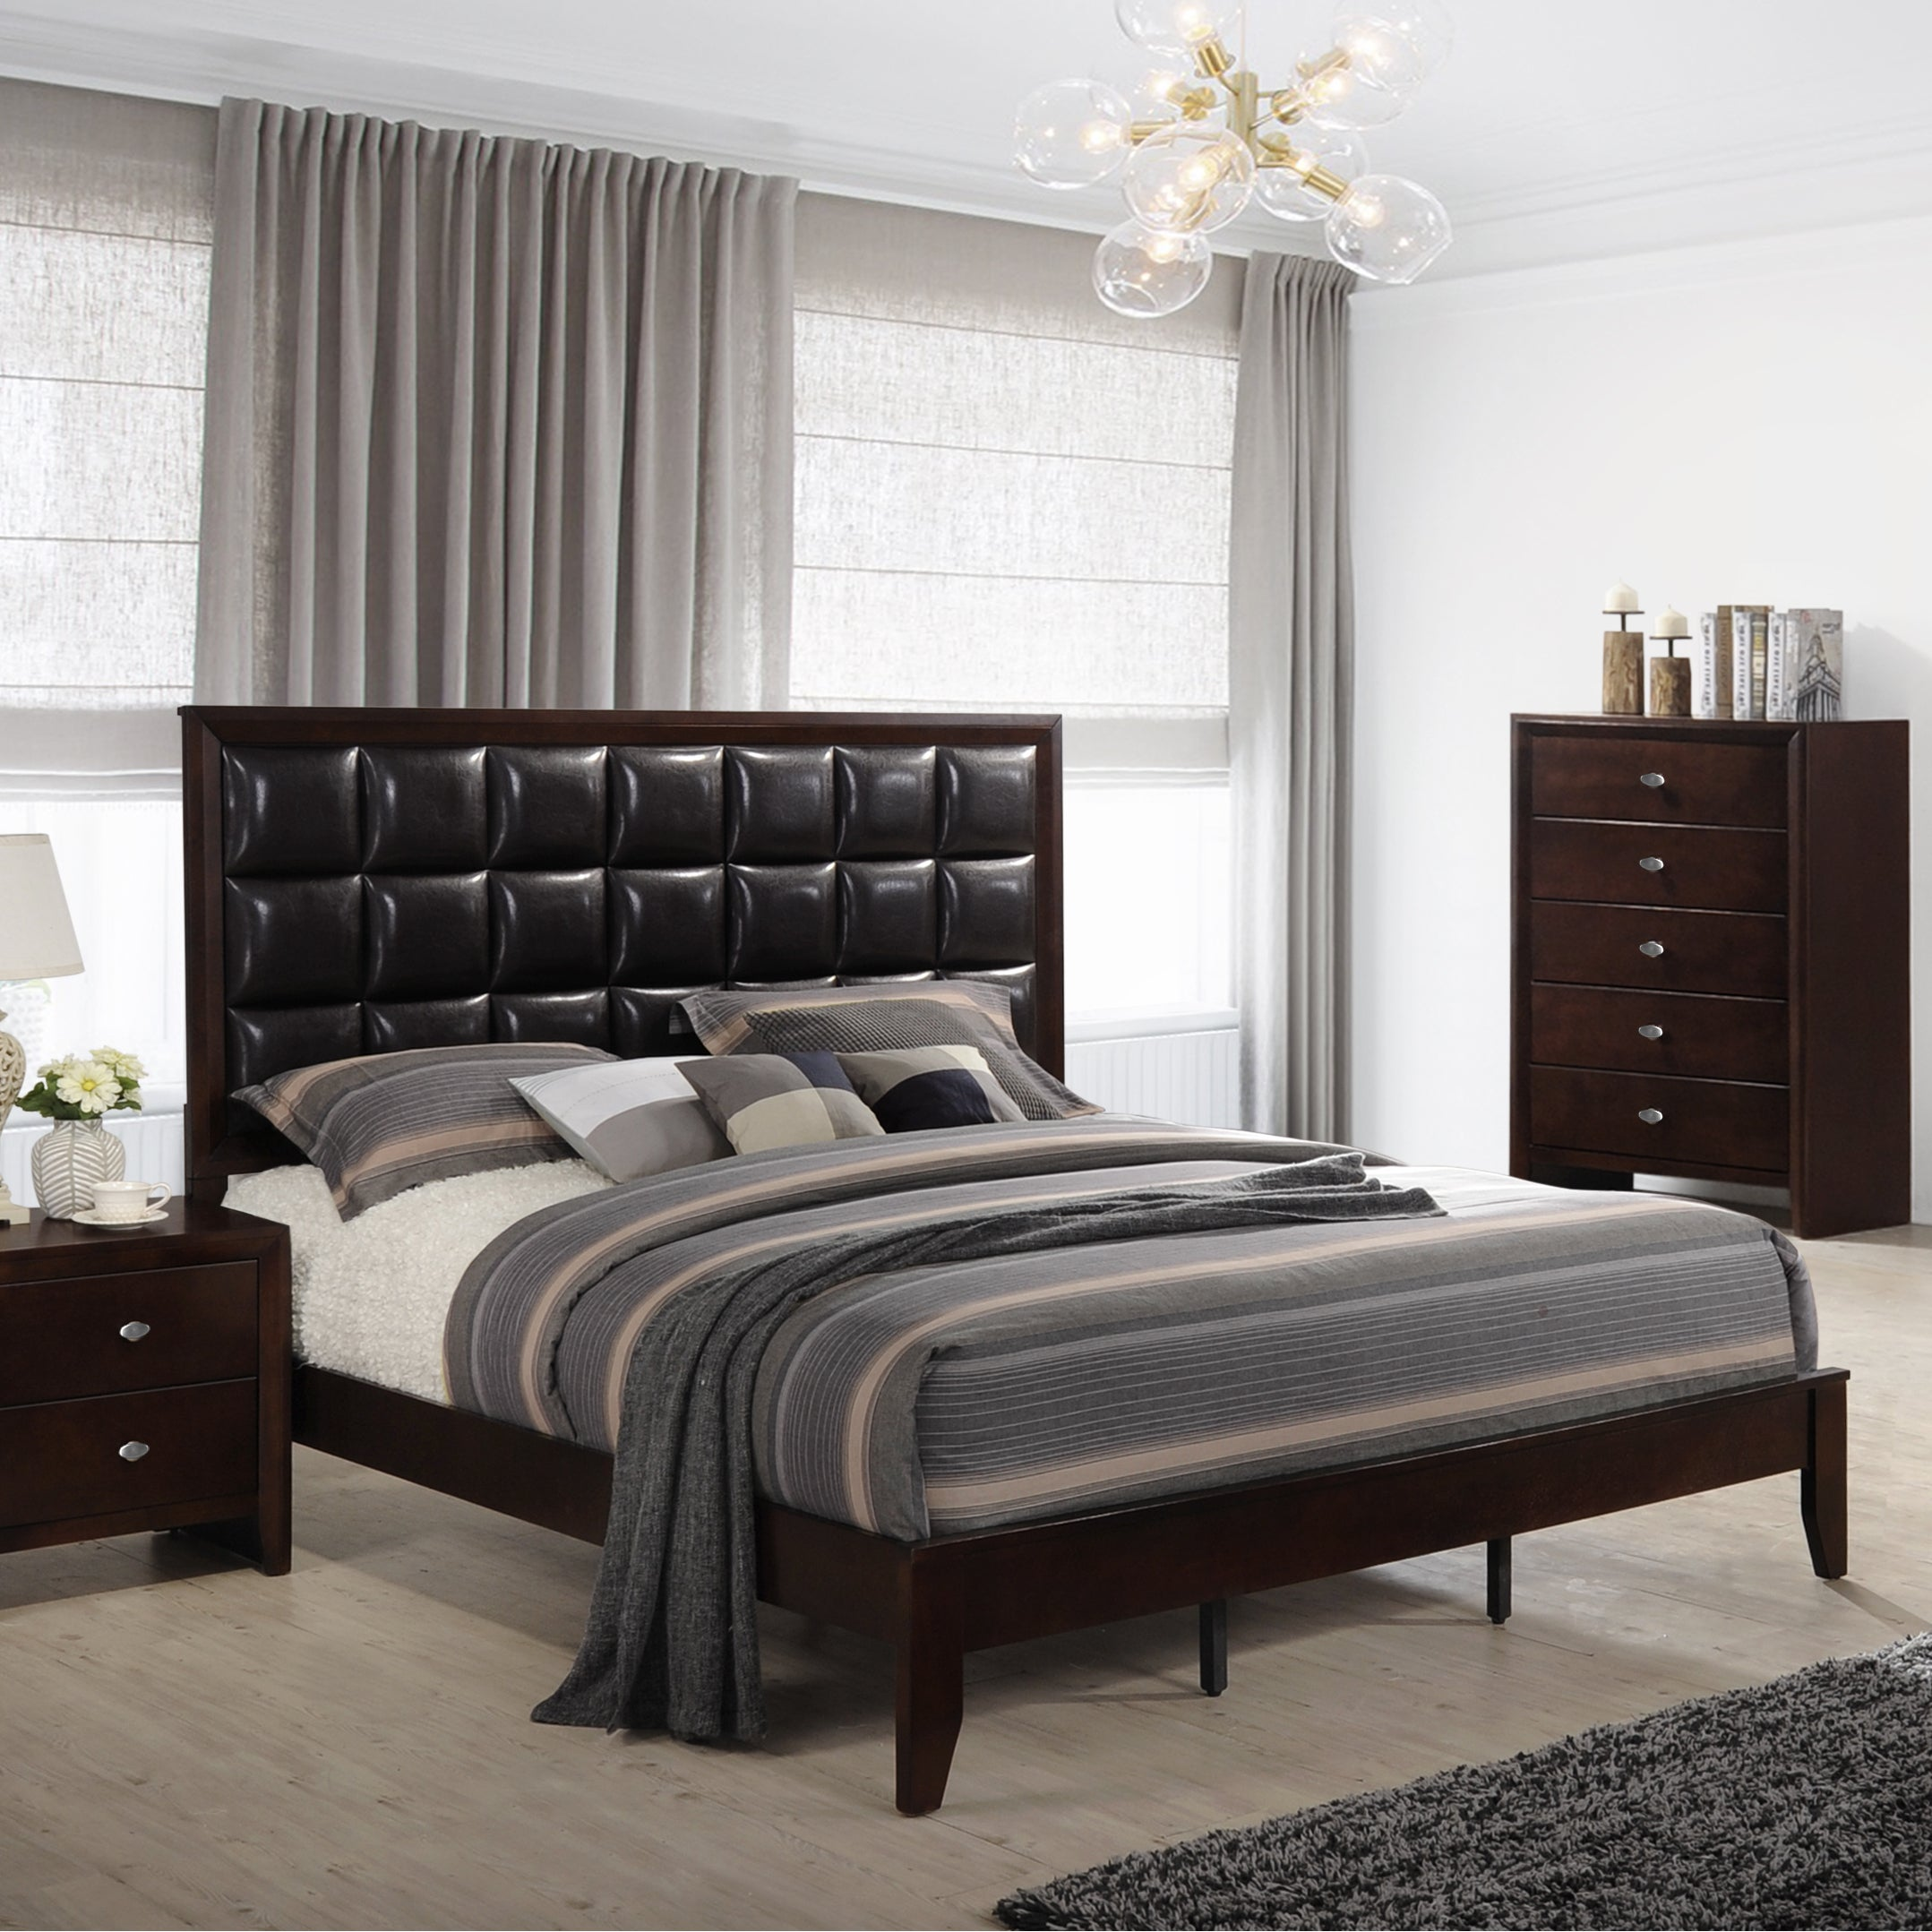 Gloria 351 Brown Cherry Finish Wood and Upholstered Bed (King - King - Faux Leather/Wood)